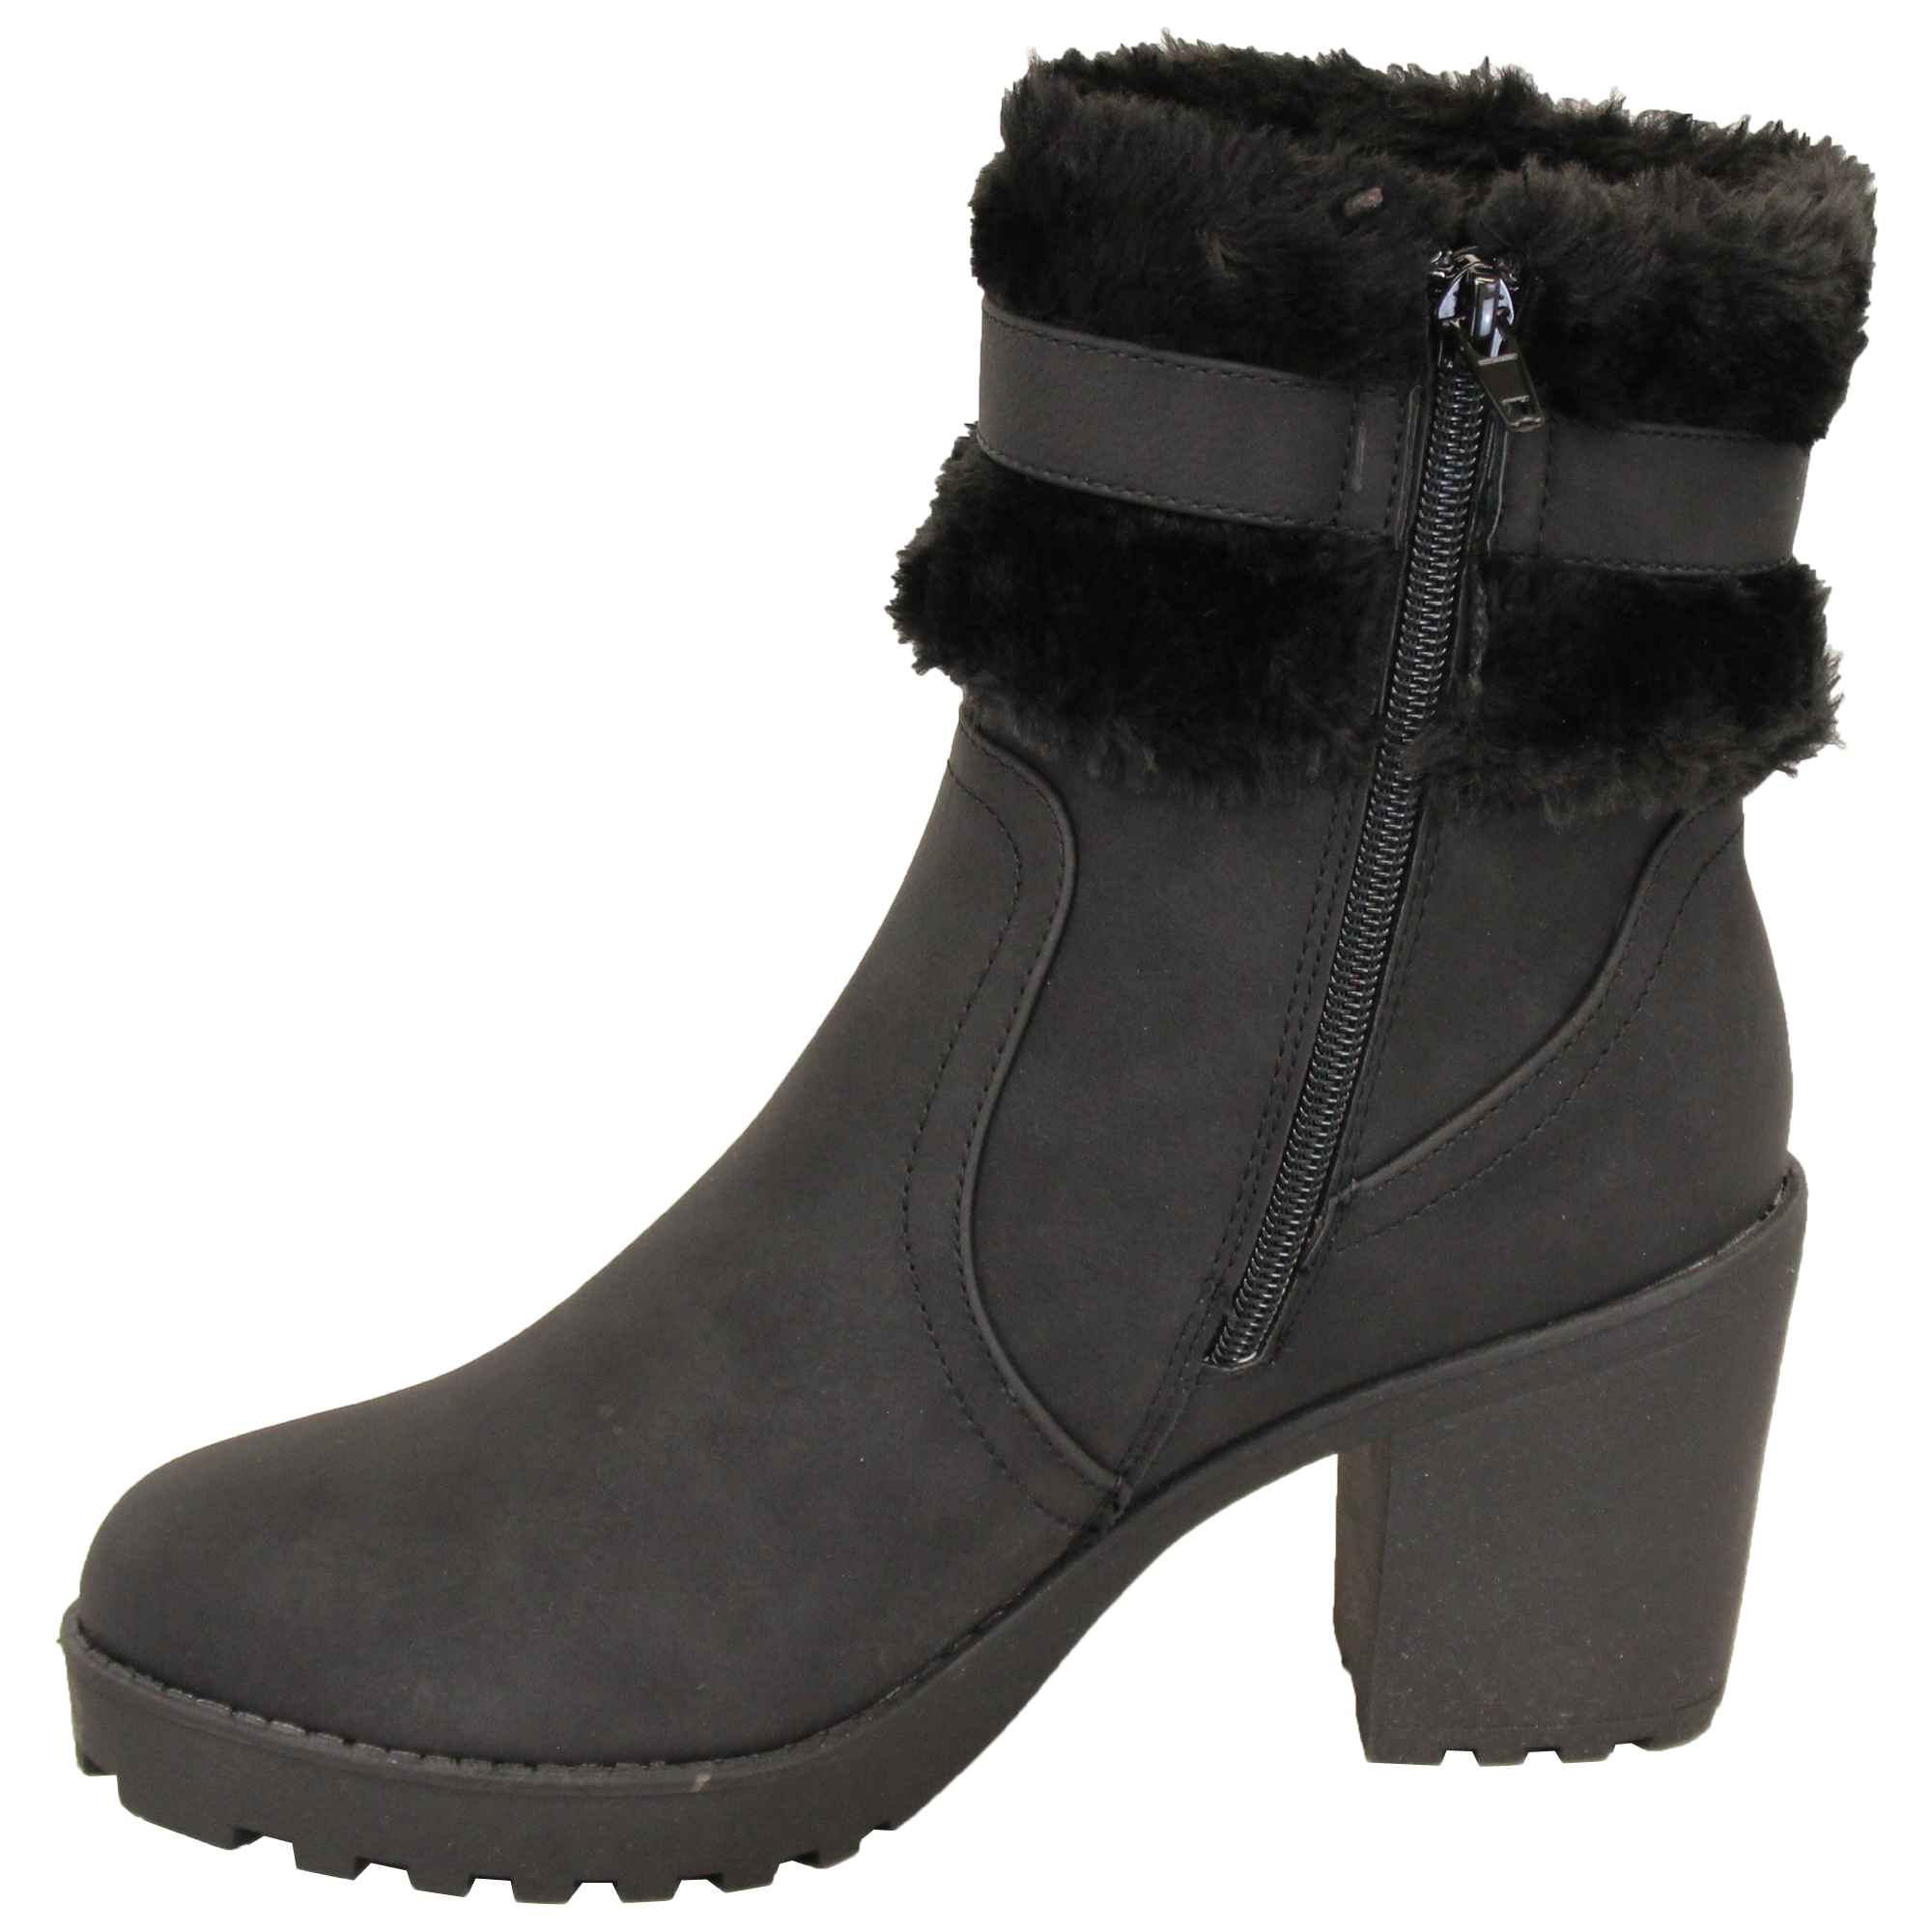 Ladies-Block-Heel-Chelsea-Ankle-Boots-Womens-Fur-Buckle-Warm-Casual-Winter-New thumbnail 3